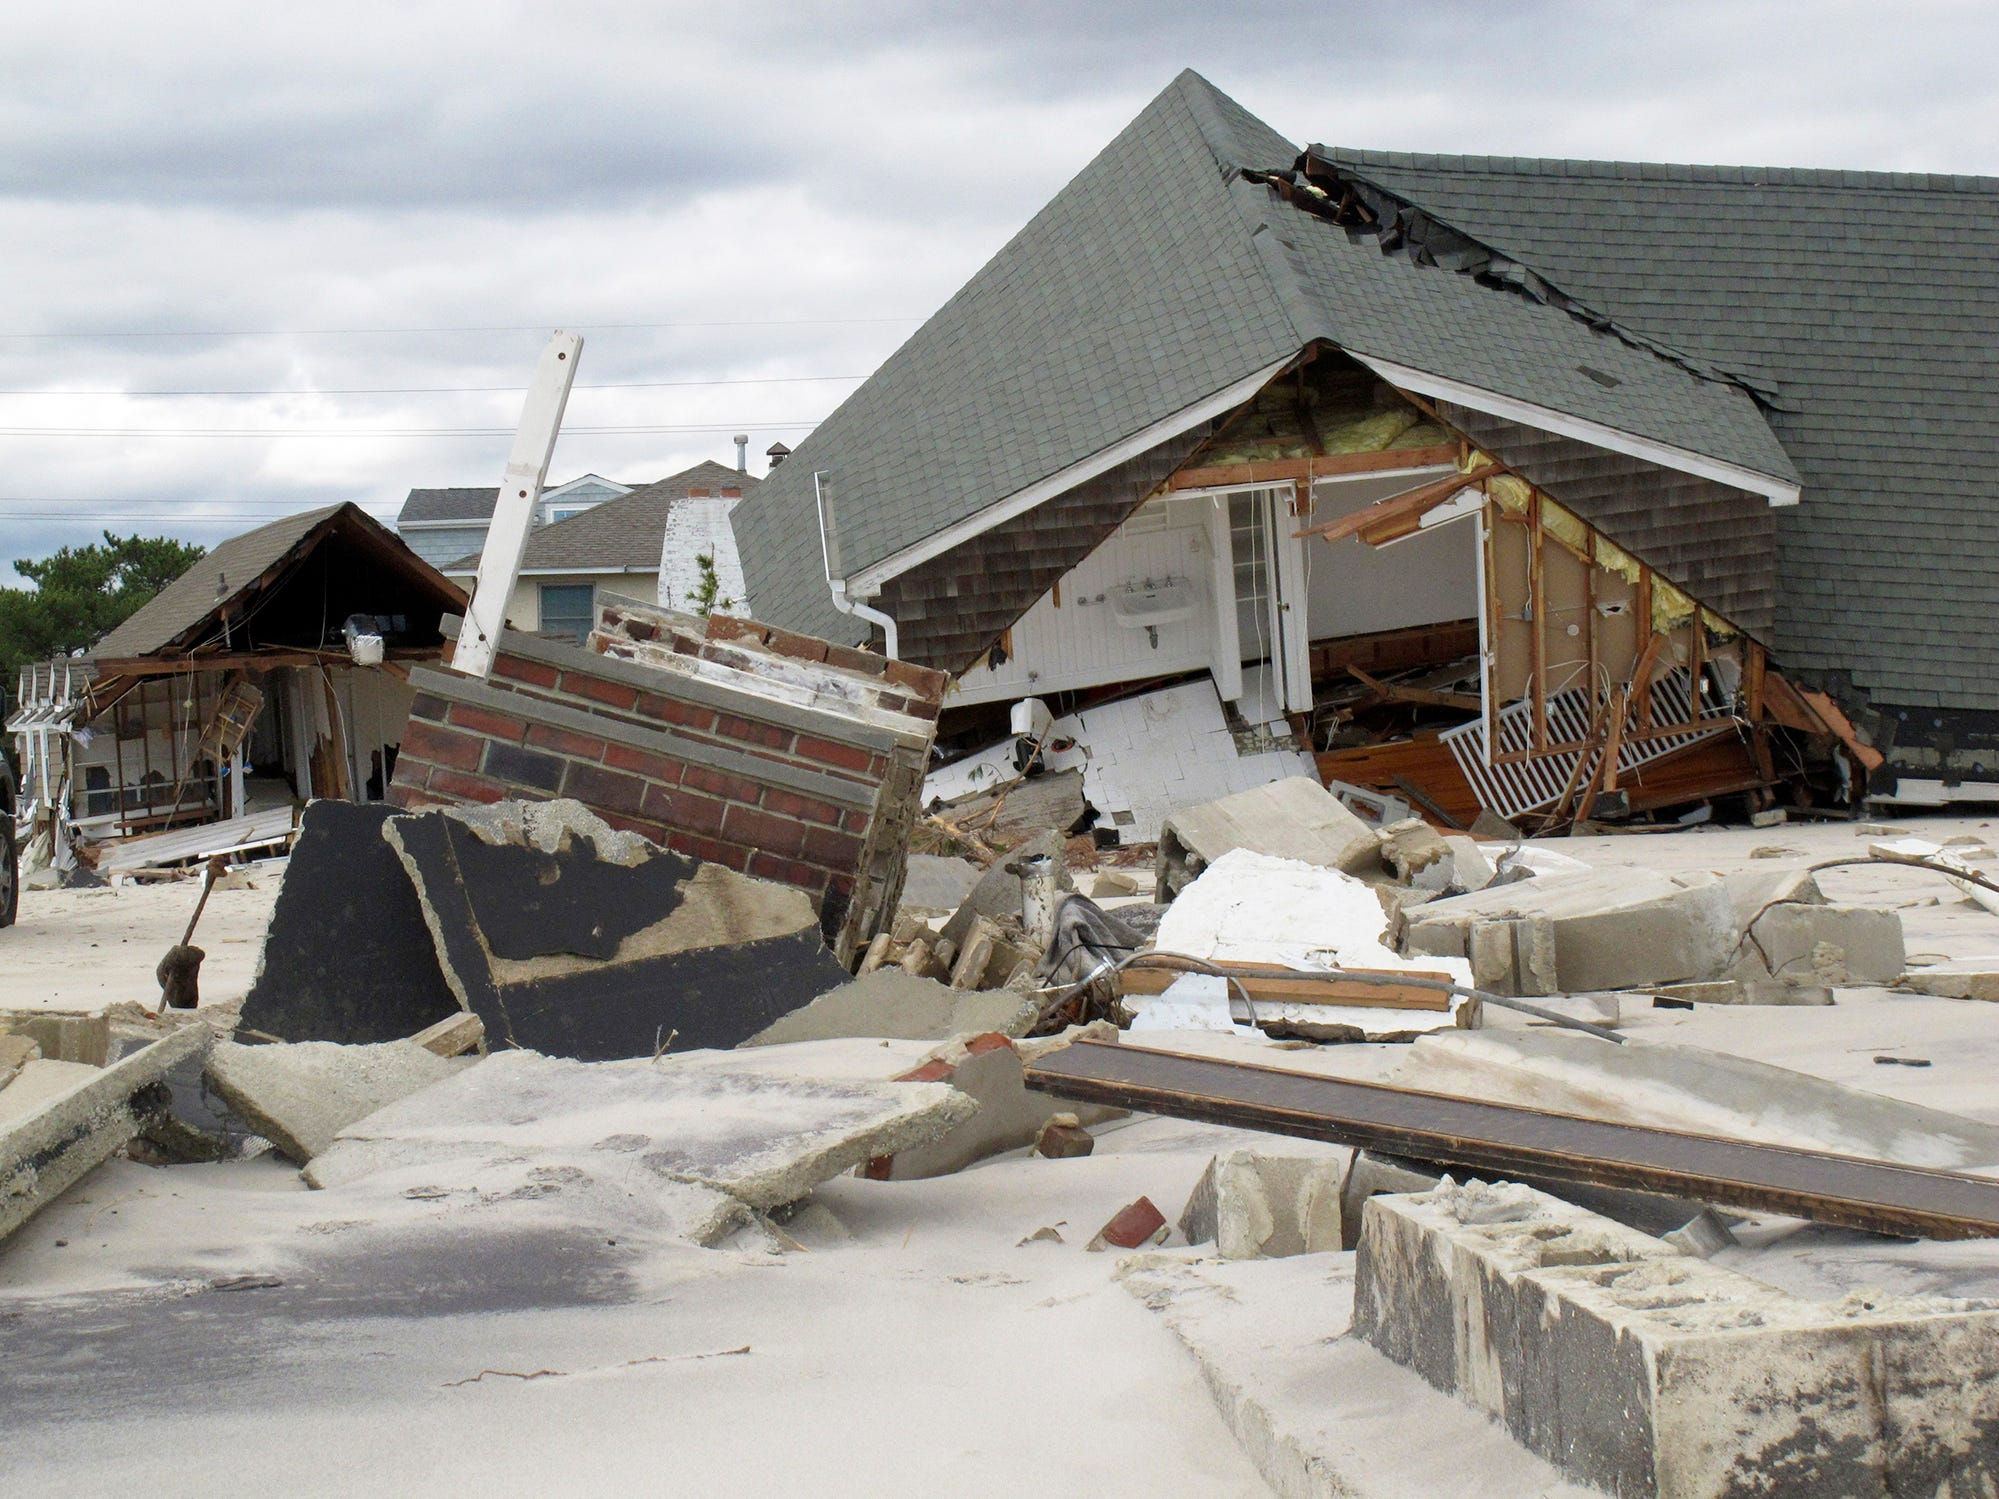 This Wednesday, Oct. 31 2012 photo shows one of many destroyed oceanfront homes in Mantoloking, N.J.  2012 in the aftermath of Hurricane Sandy. Most of the multimillion-dollar homes along this old-money stretch of the Jersey shore were seriously damaged by pounding surf, wild wind and, in some cases, fire from ruptured gas lines. Numerous homes were destroyed, and some were obliterated, leaving behind just empty sand or maybe a few broken pilings jutting up out of the surf.